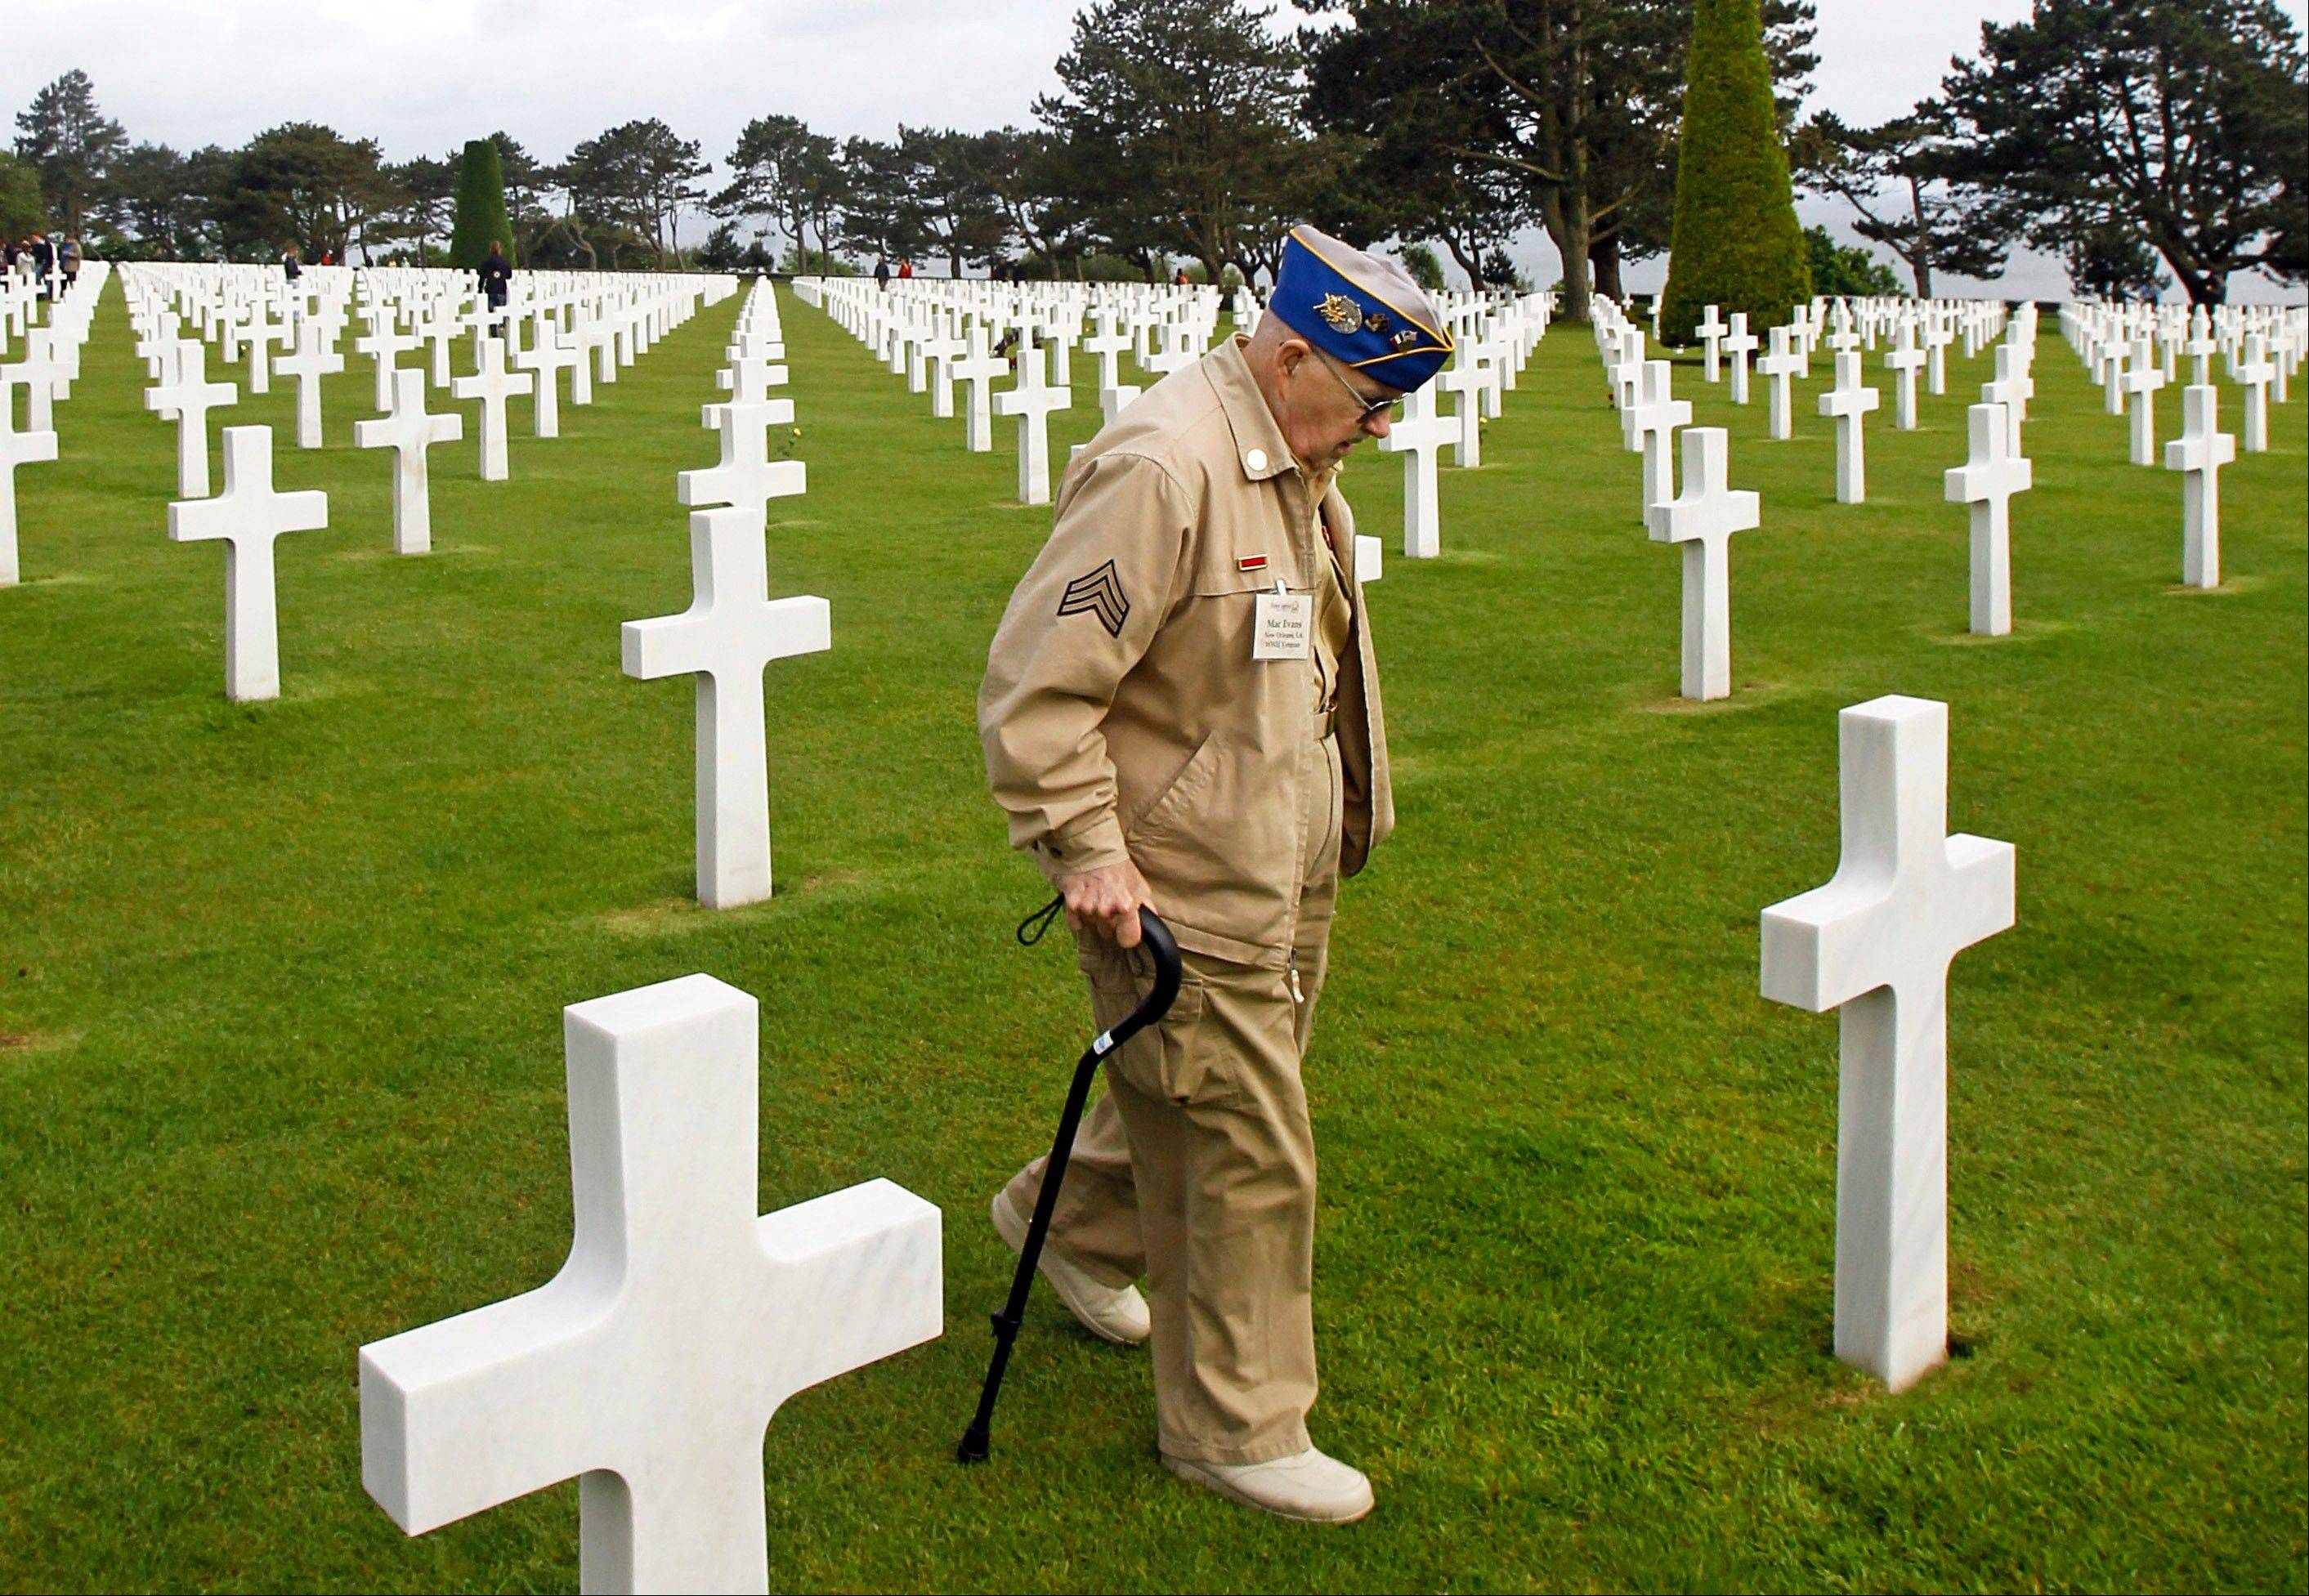 U.S. WW II veteran Clarence Mac Evans, 87, from West Virginia, who landed in Normandy on June 6, 1944, with the 29th infantery division, walks among the graves at the Colleville American military cemetery, in Colleville sur Mer, western France, Wednesday June 6, 2012, before the start of the ceremony commemorating the 68th anniversary of the D-Day. Clarence MacEvans is searching for the tombs of 17 of his fellows who died on D Day.